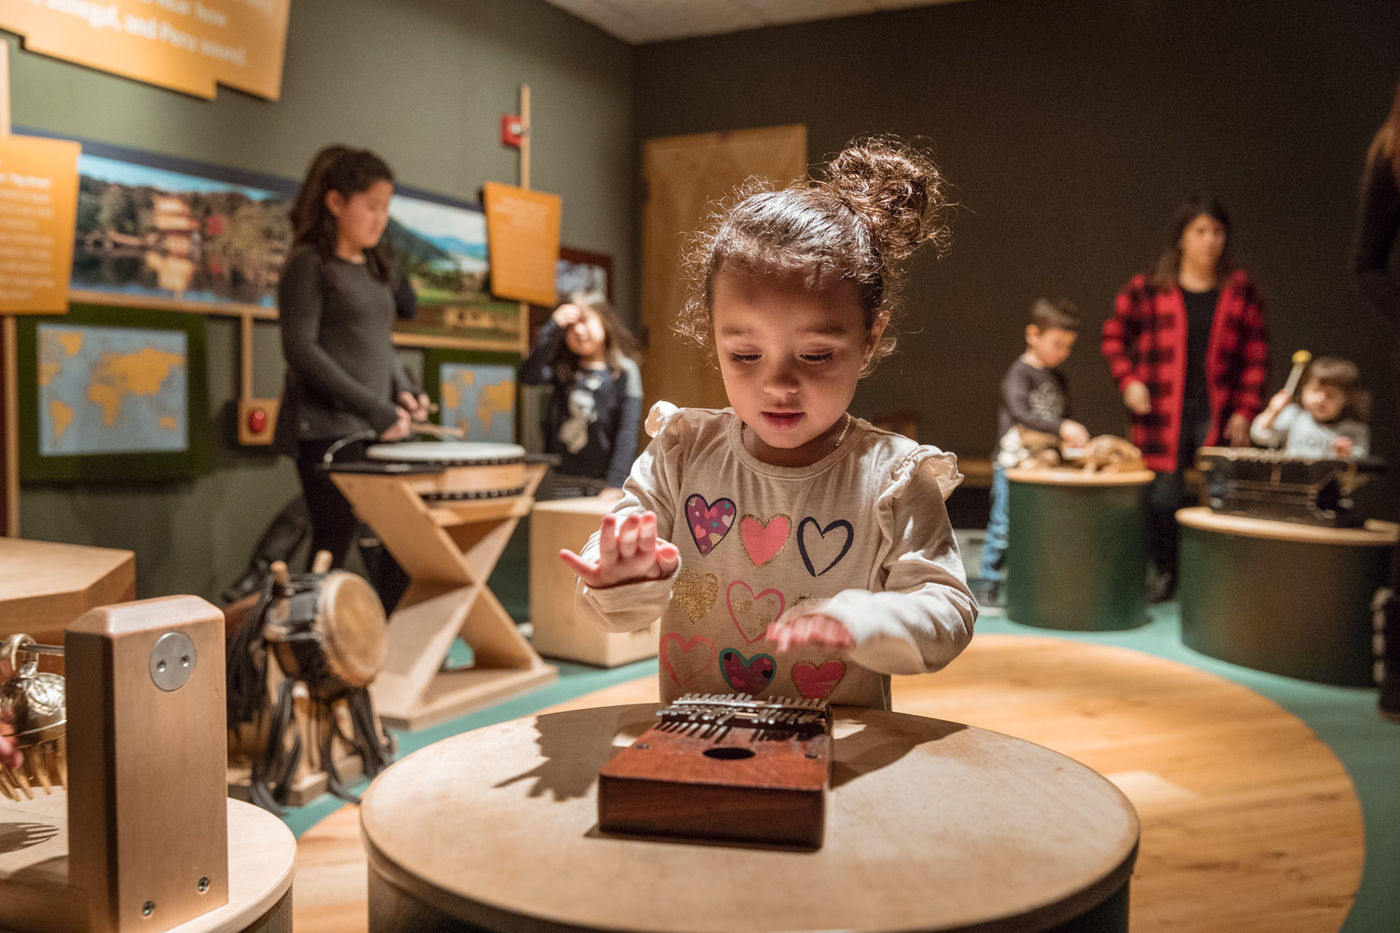 A child plays a mbira in the foreground, while behind her other children play drums and a xylophone.